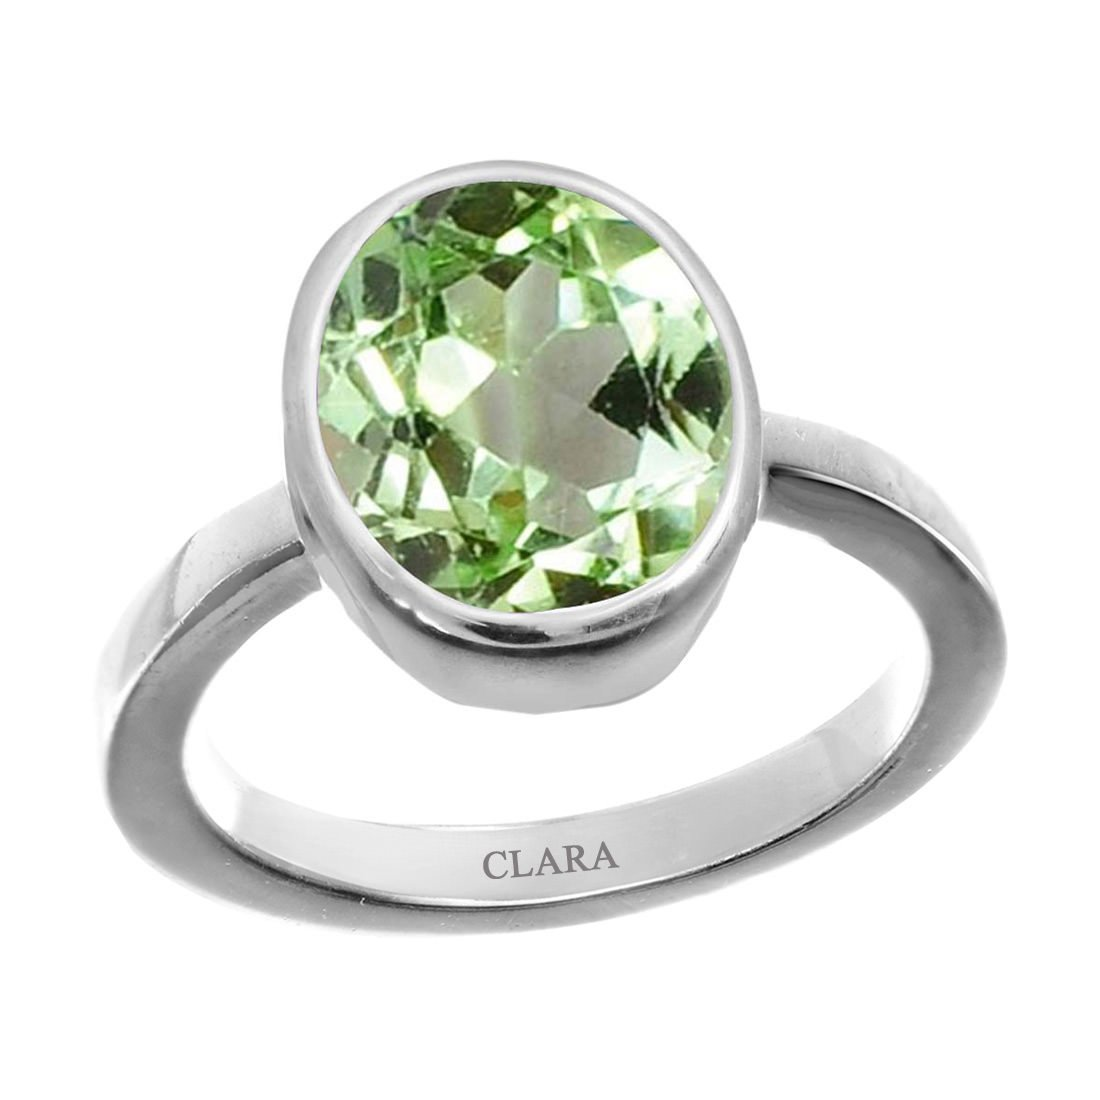 Clara Certified Peridot 8.3cts or 9.25ratti original stone Sterling Silver Astrological Ring for Men and Women